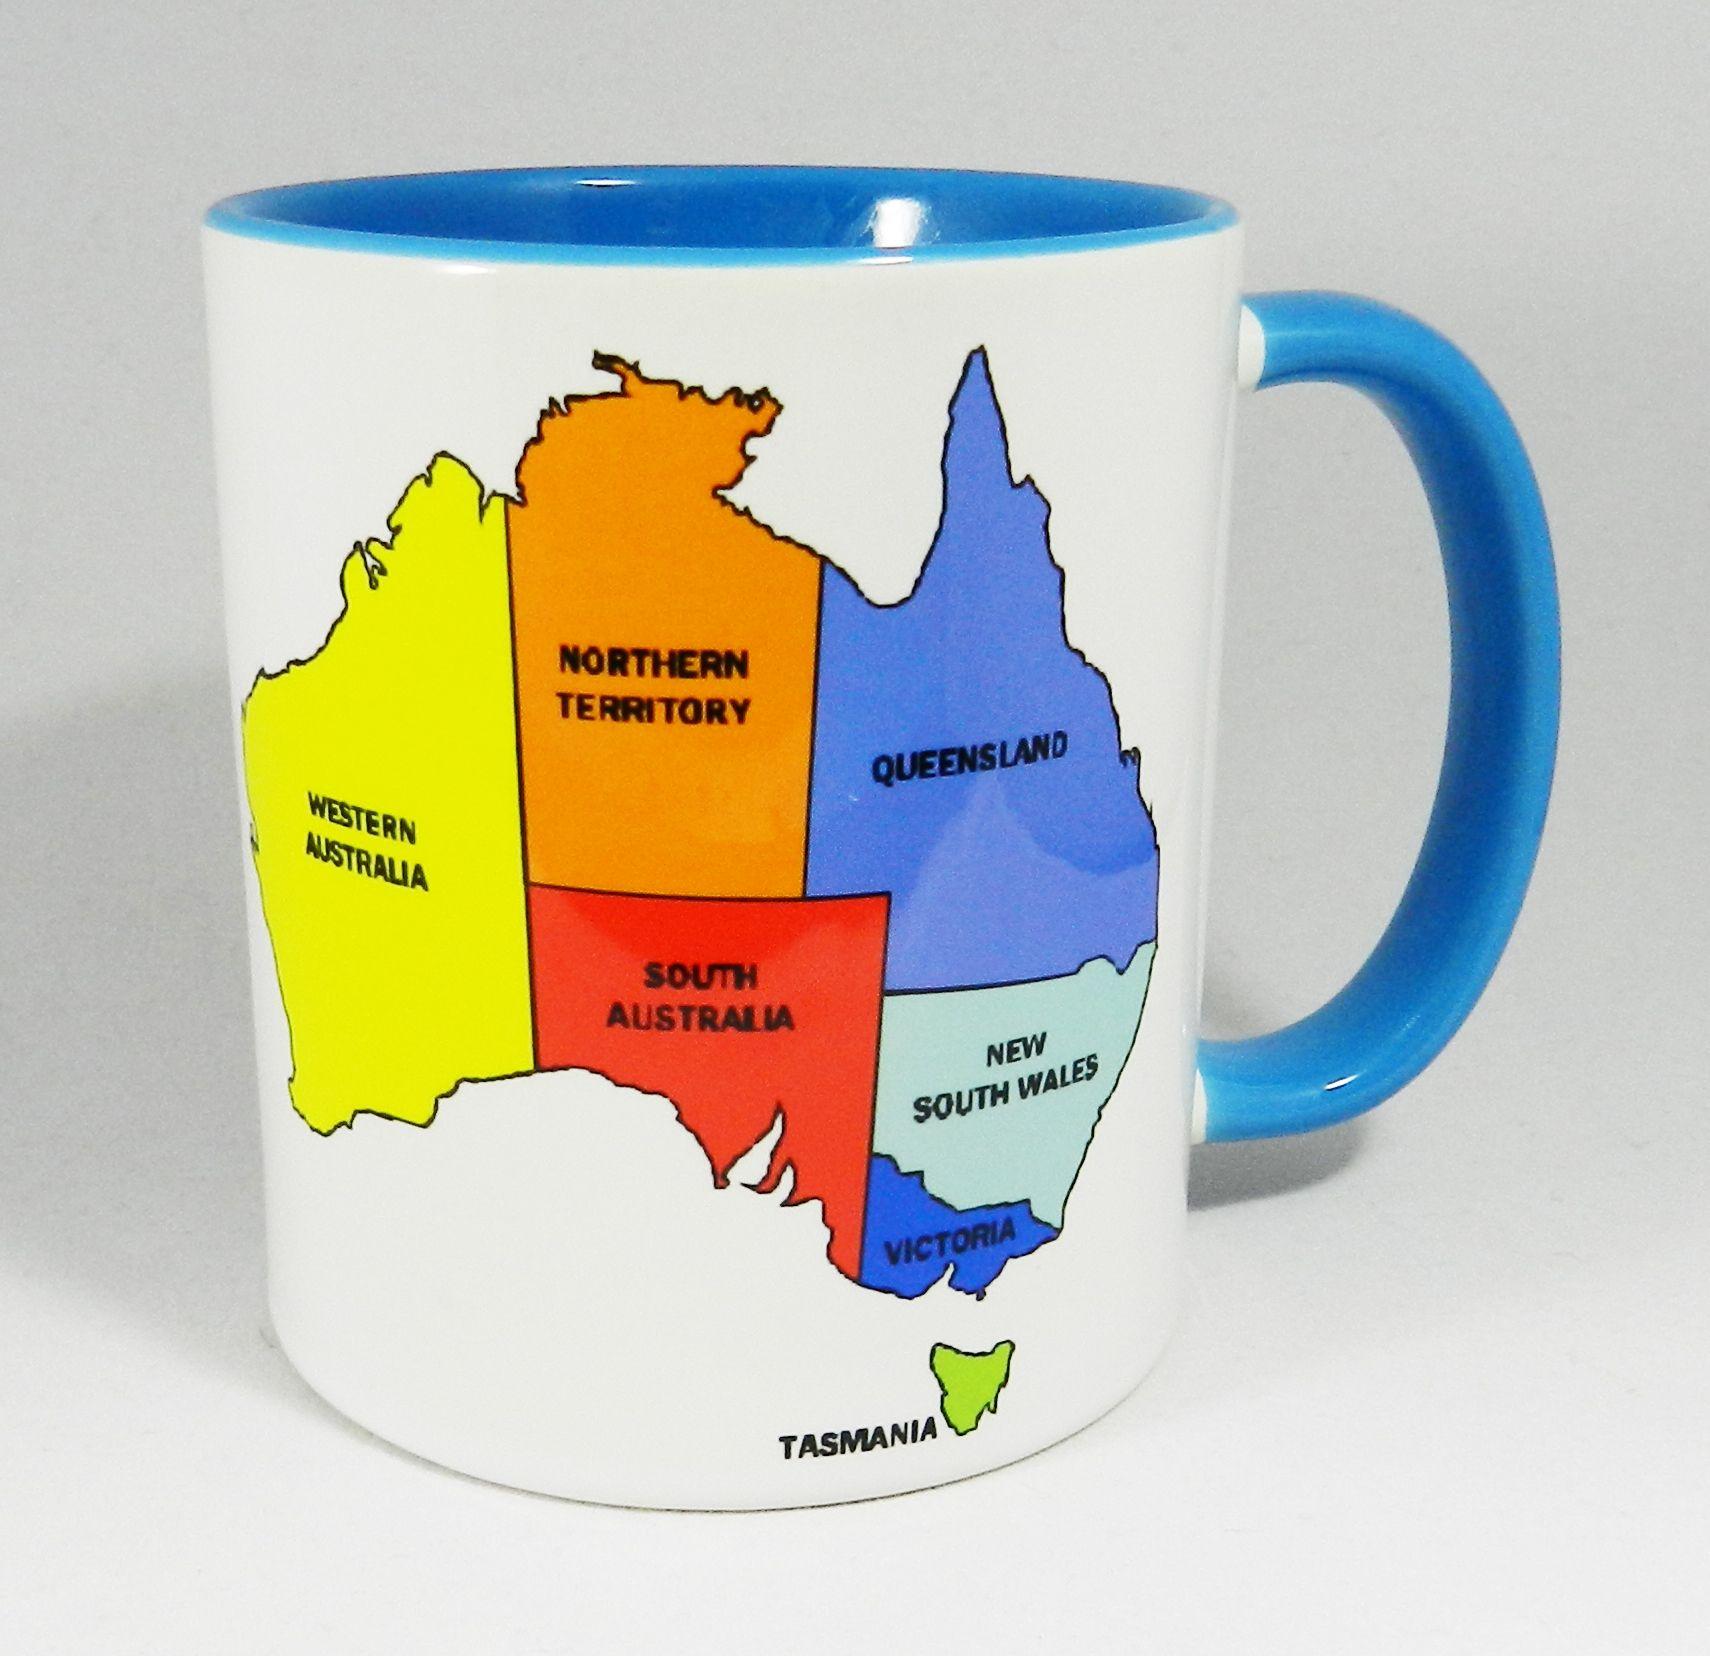 Colourful map of Australia, showing 7 of the 8 States and territories that make up the Country. New South Wales, Victoria, Northern Territories, Queensland, South Australia, Tasmania and Western Australia. Designed and printed in Britain. A high quality ceramic mug which is both dishwasher and microwave proof. Blue Ceramic Mug with a glazed blue handle and inner. Height 9.5cm Diameter 8.2 cm Capacity is 310 ml (11oz). From the Series 10 Eductaional Range by Half a Donkey…